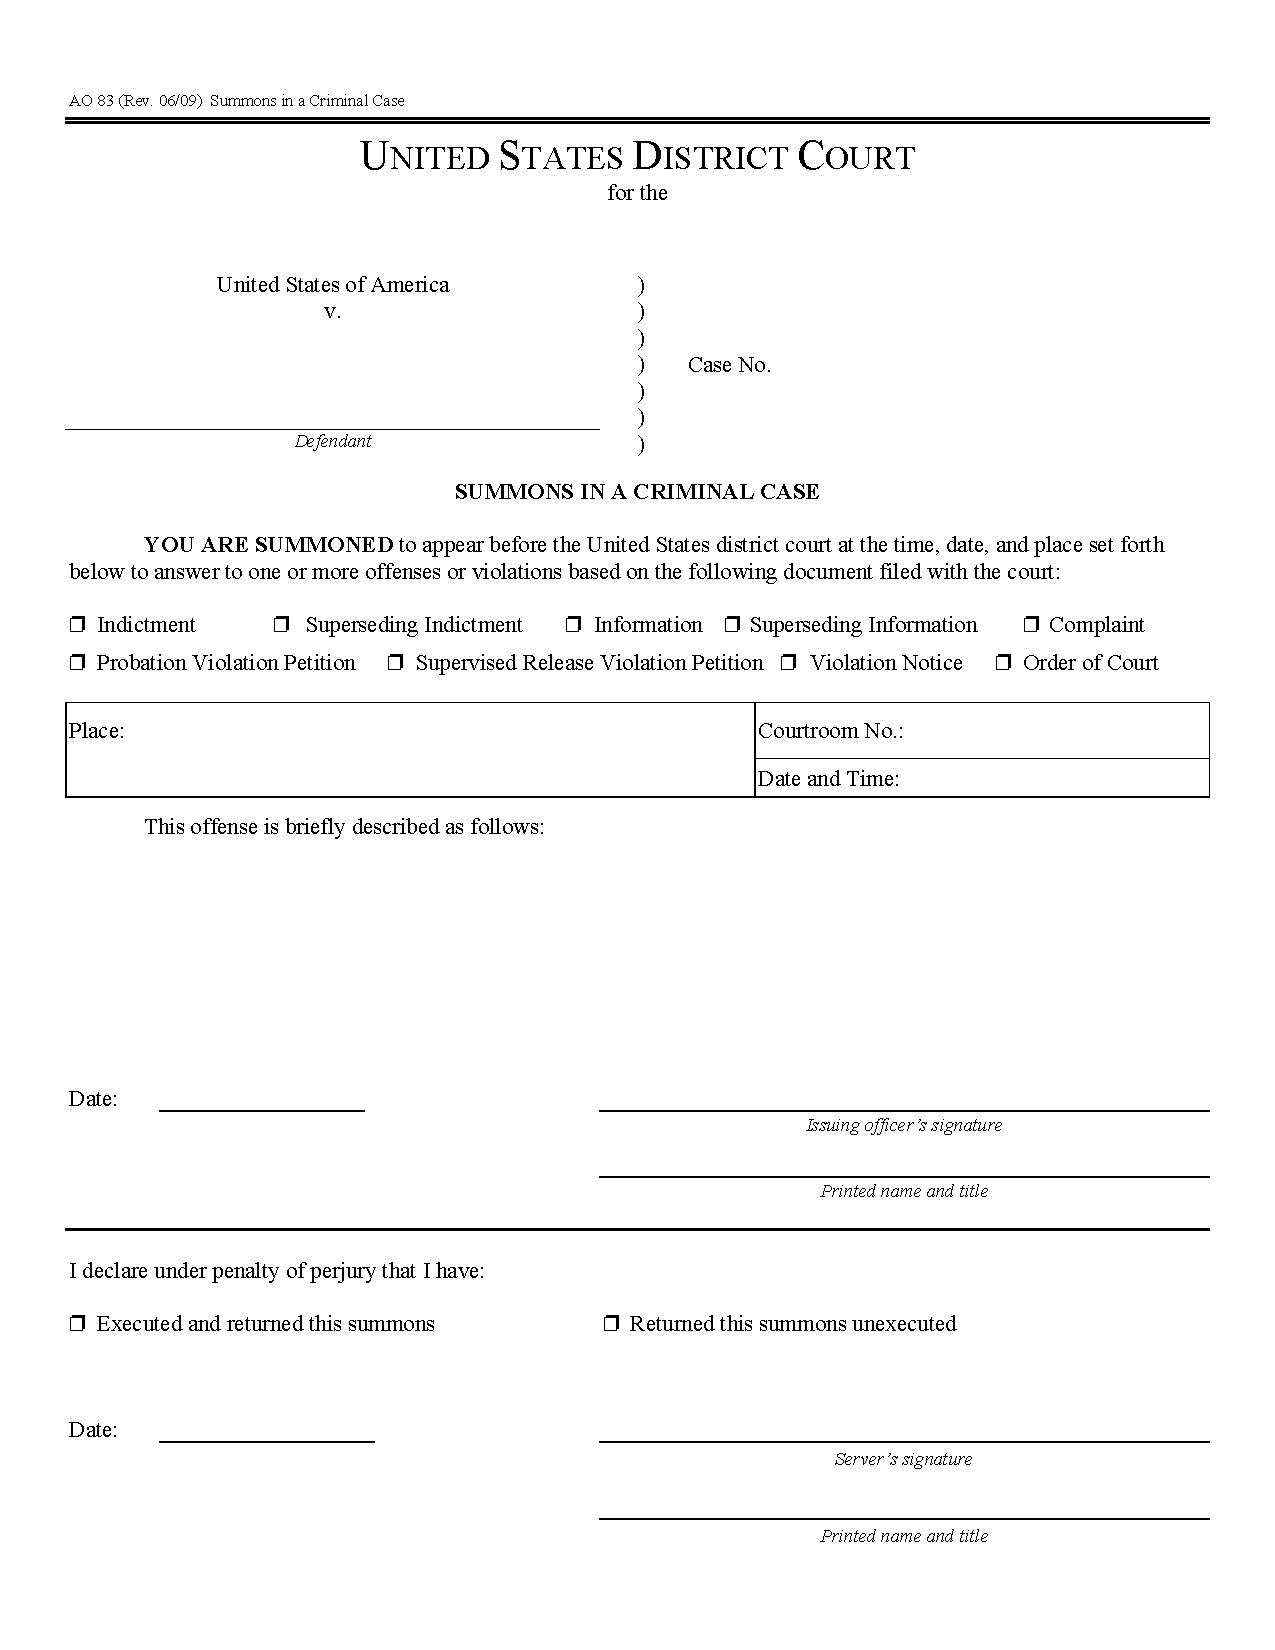 Form Ao 083 Summons In A Criminal Case Within Court Dates By Defendant Name